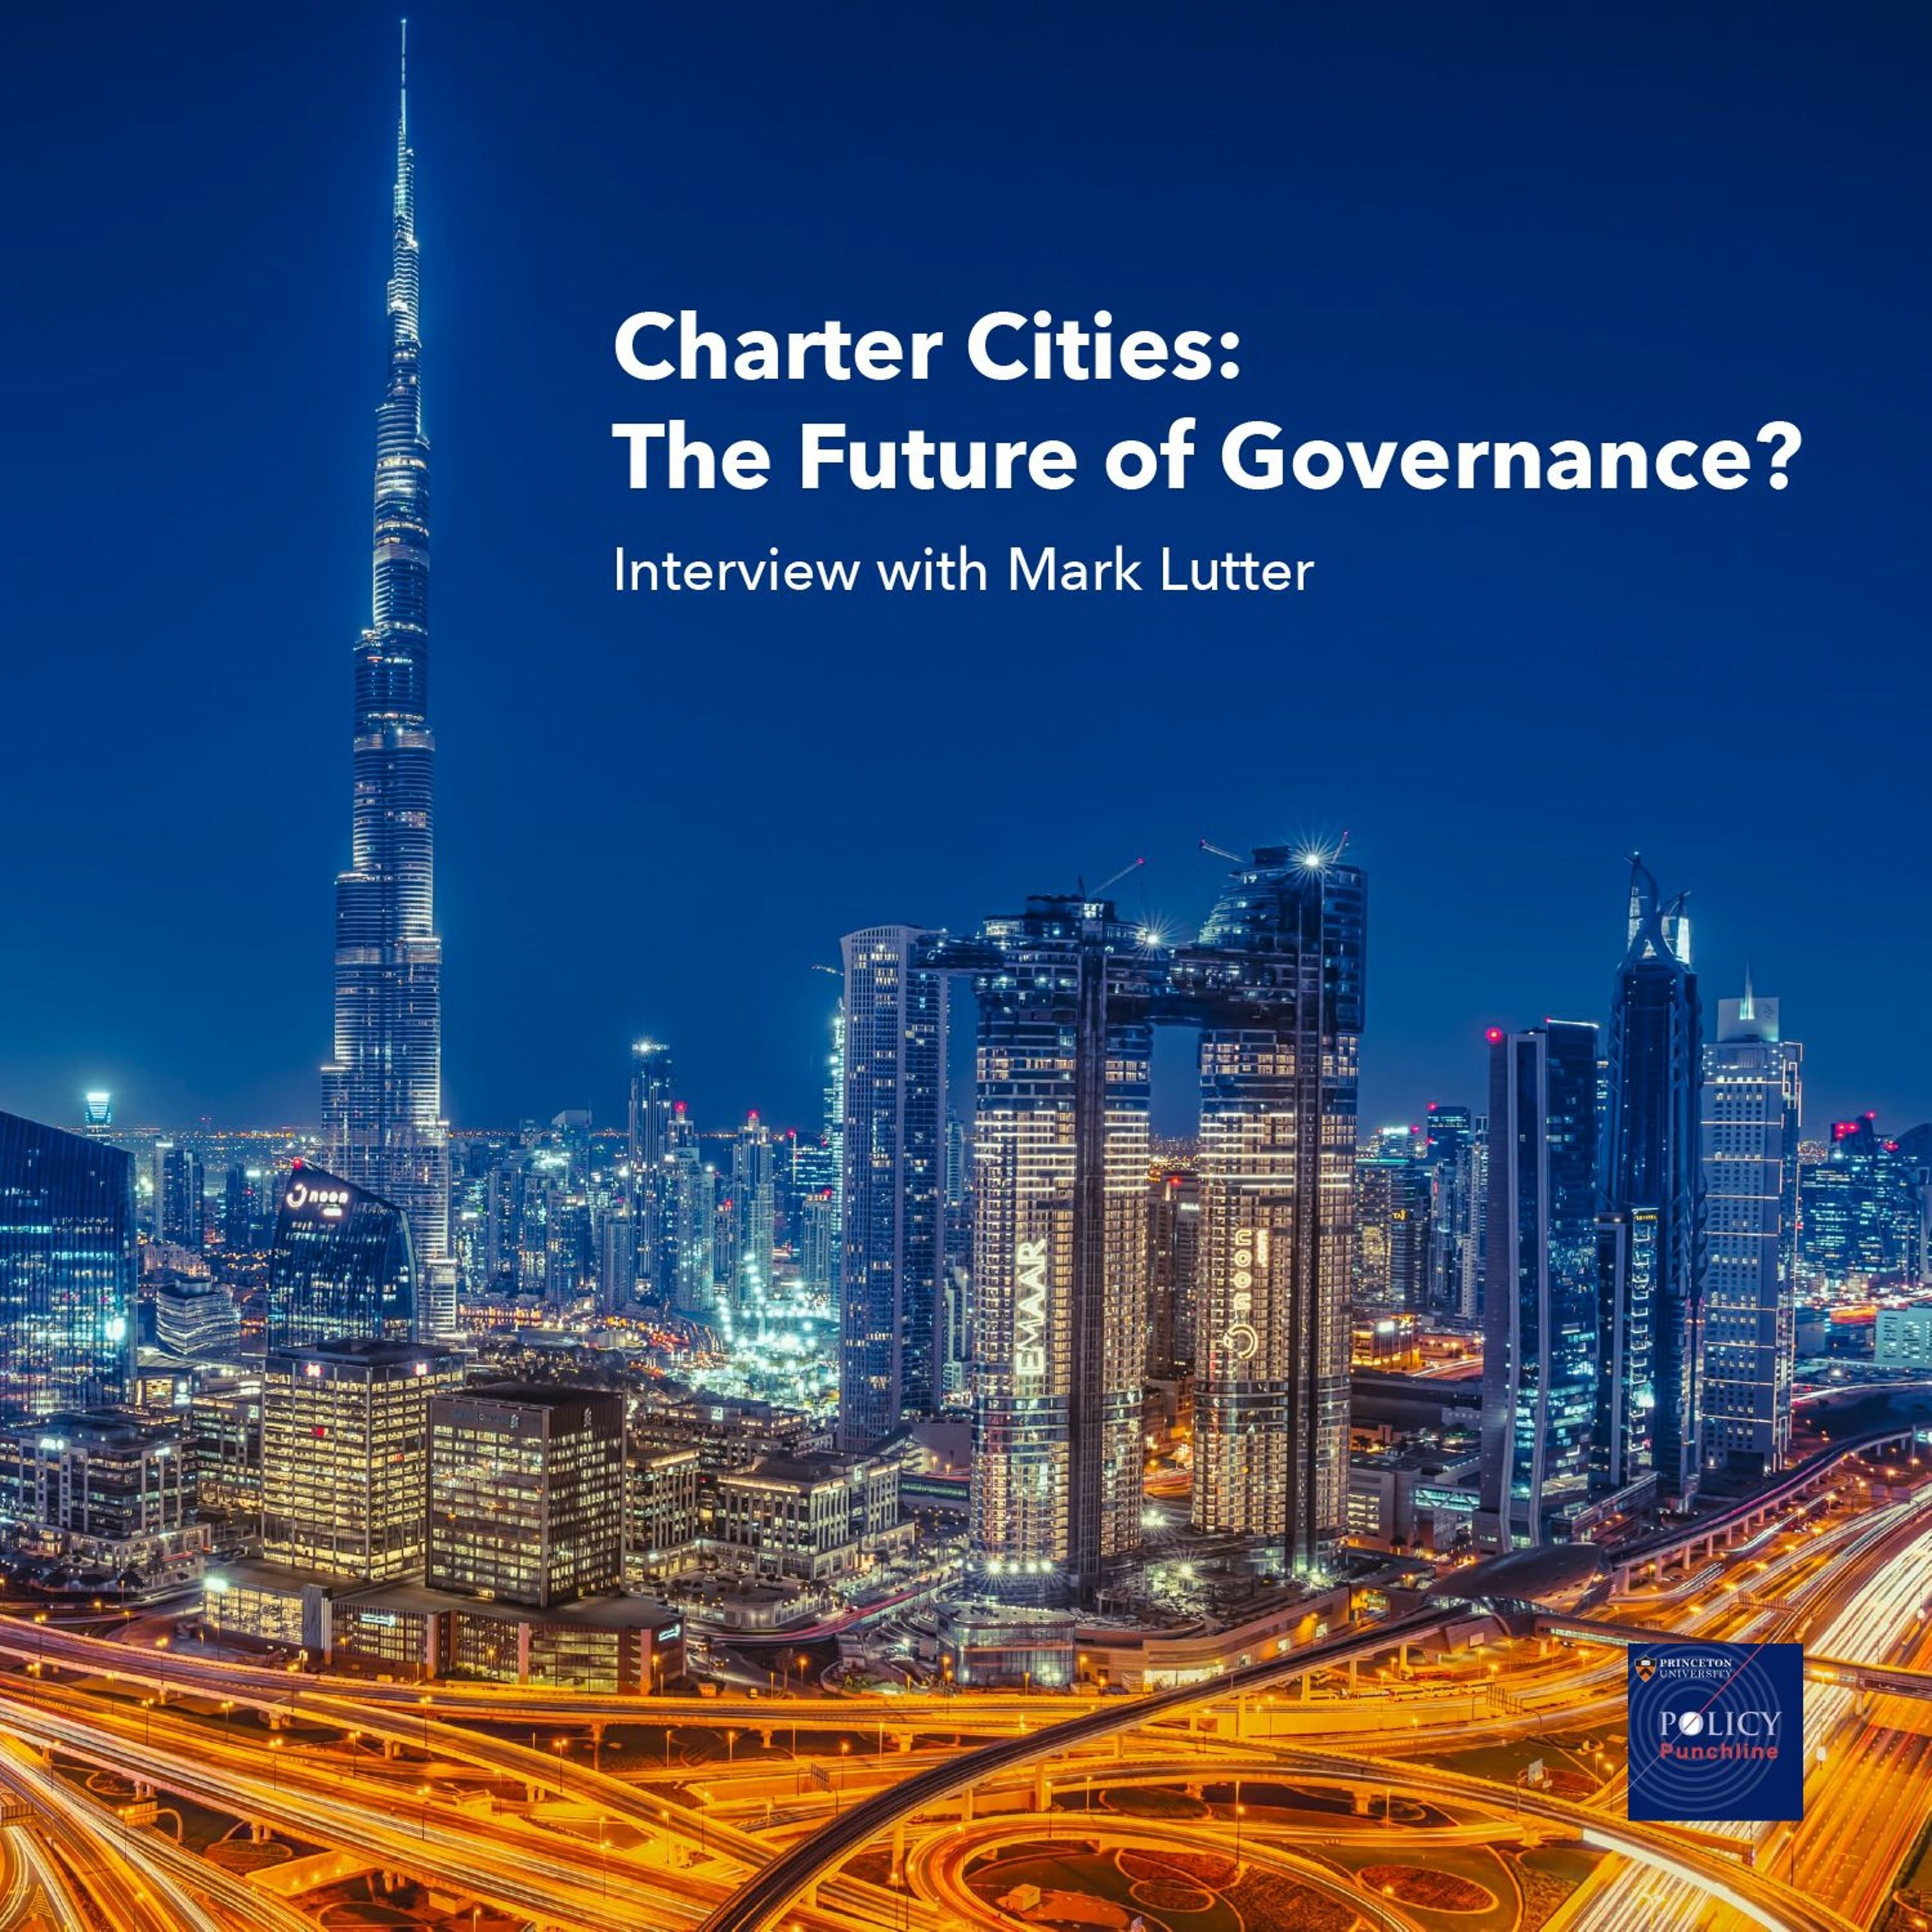 Charter Cities: The Future of Governance?